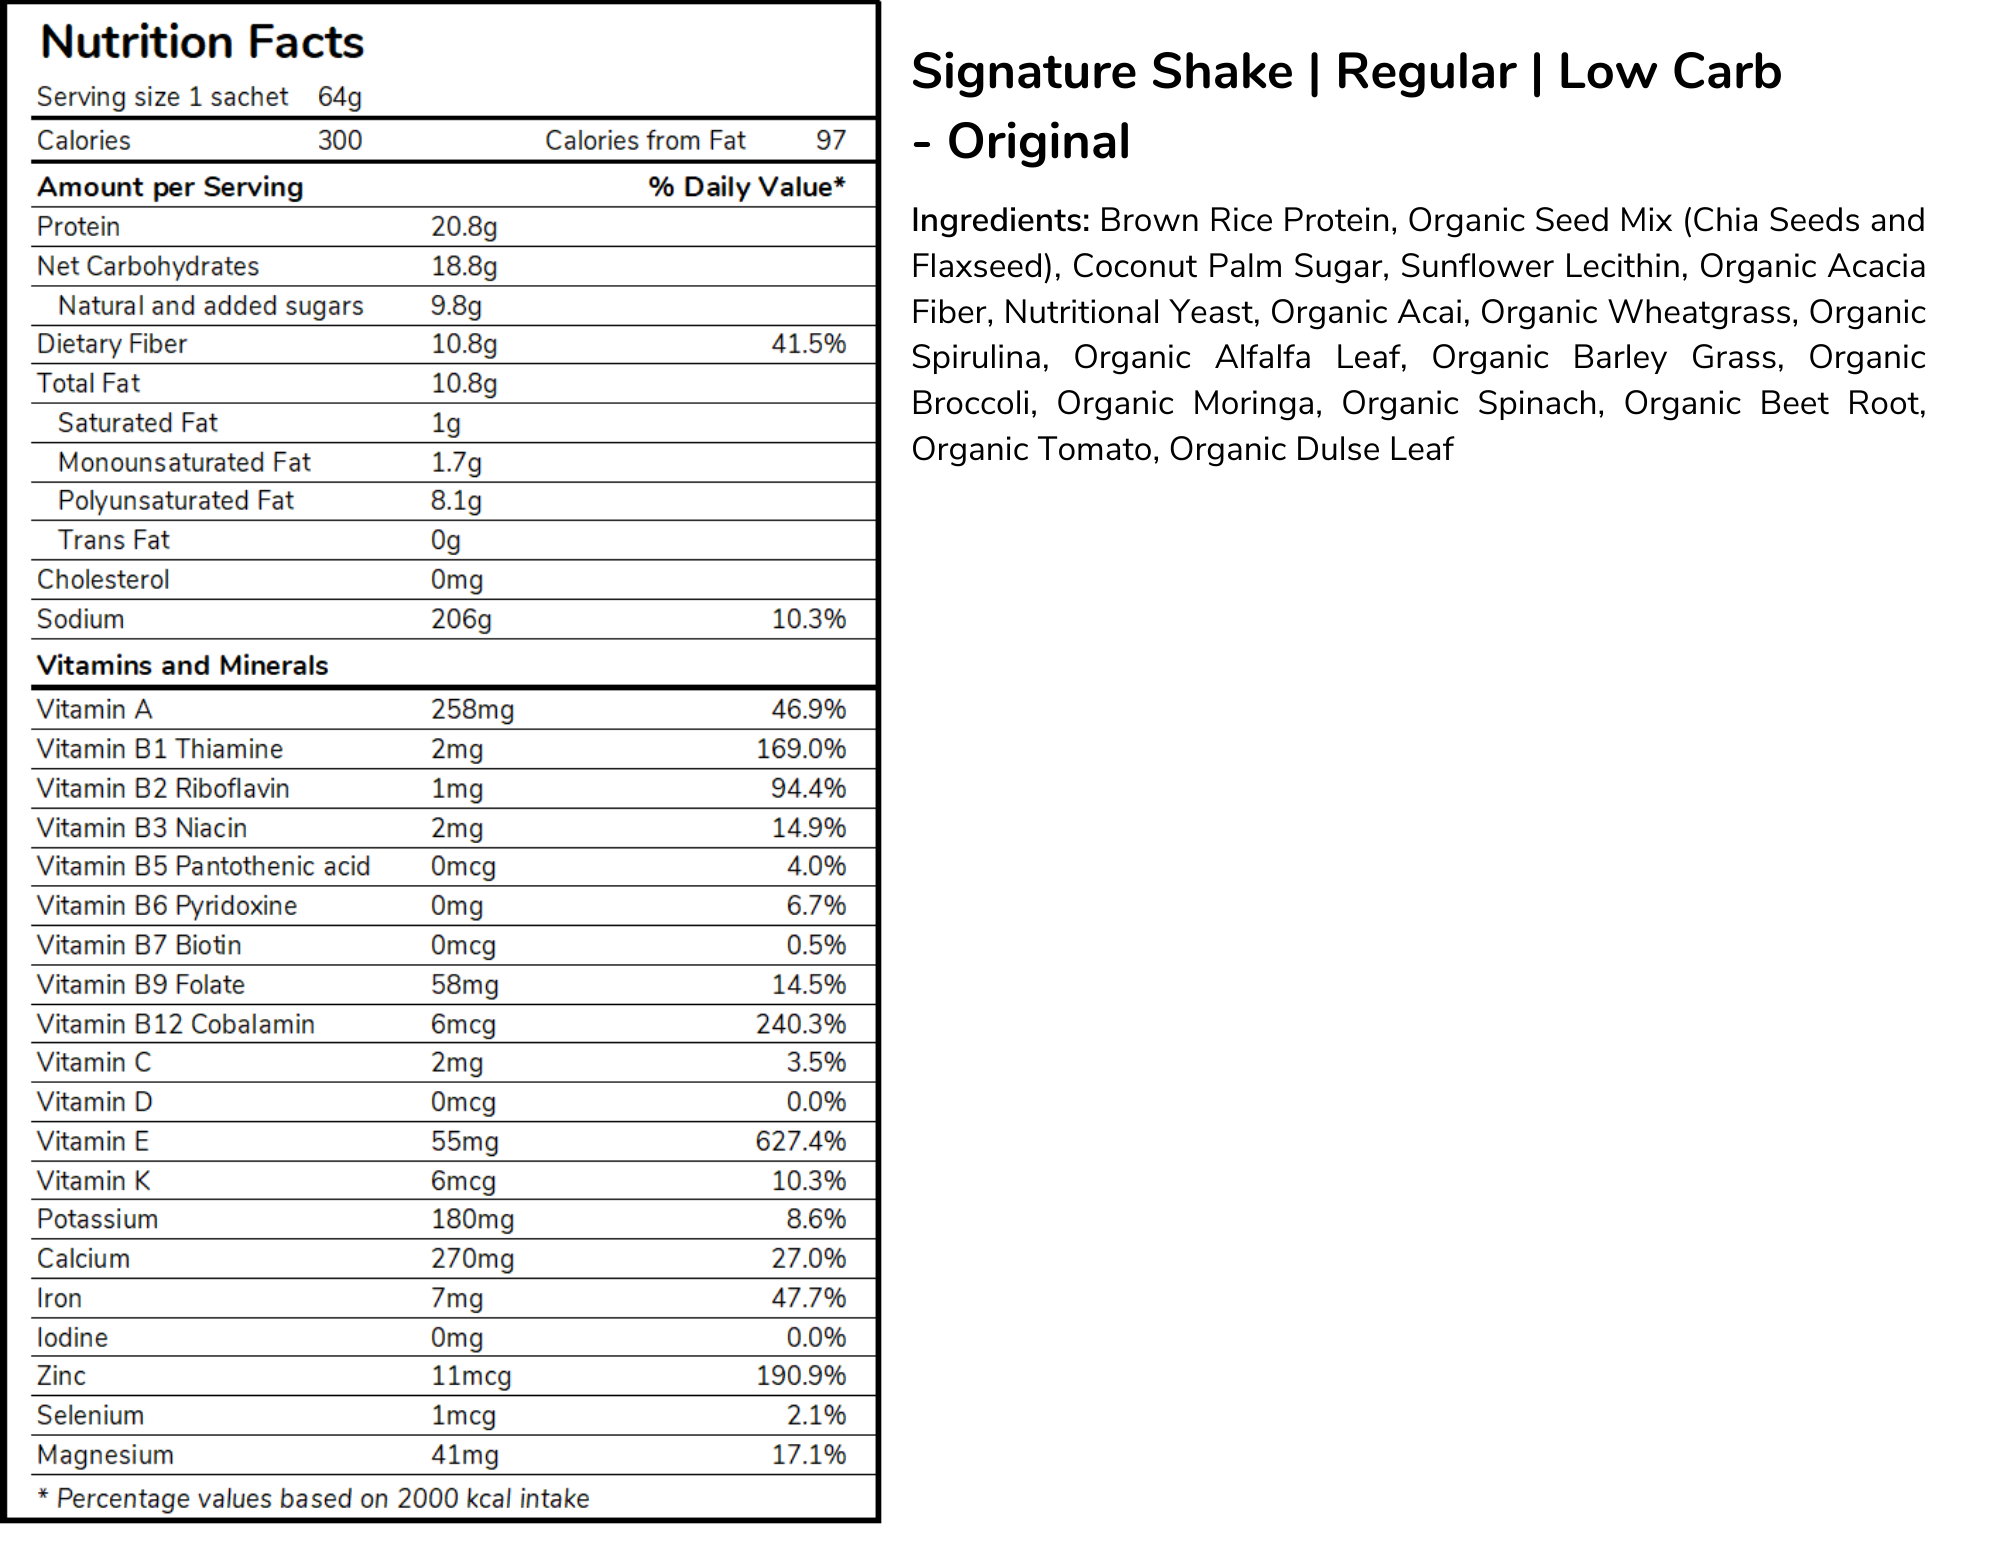 Signature meal replacement shakes regular size low carb formula nutritional panel